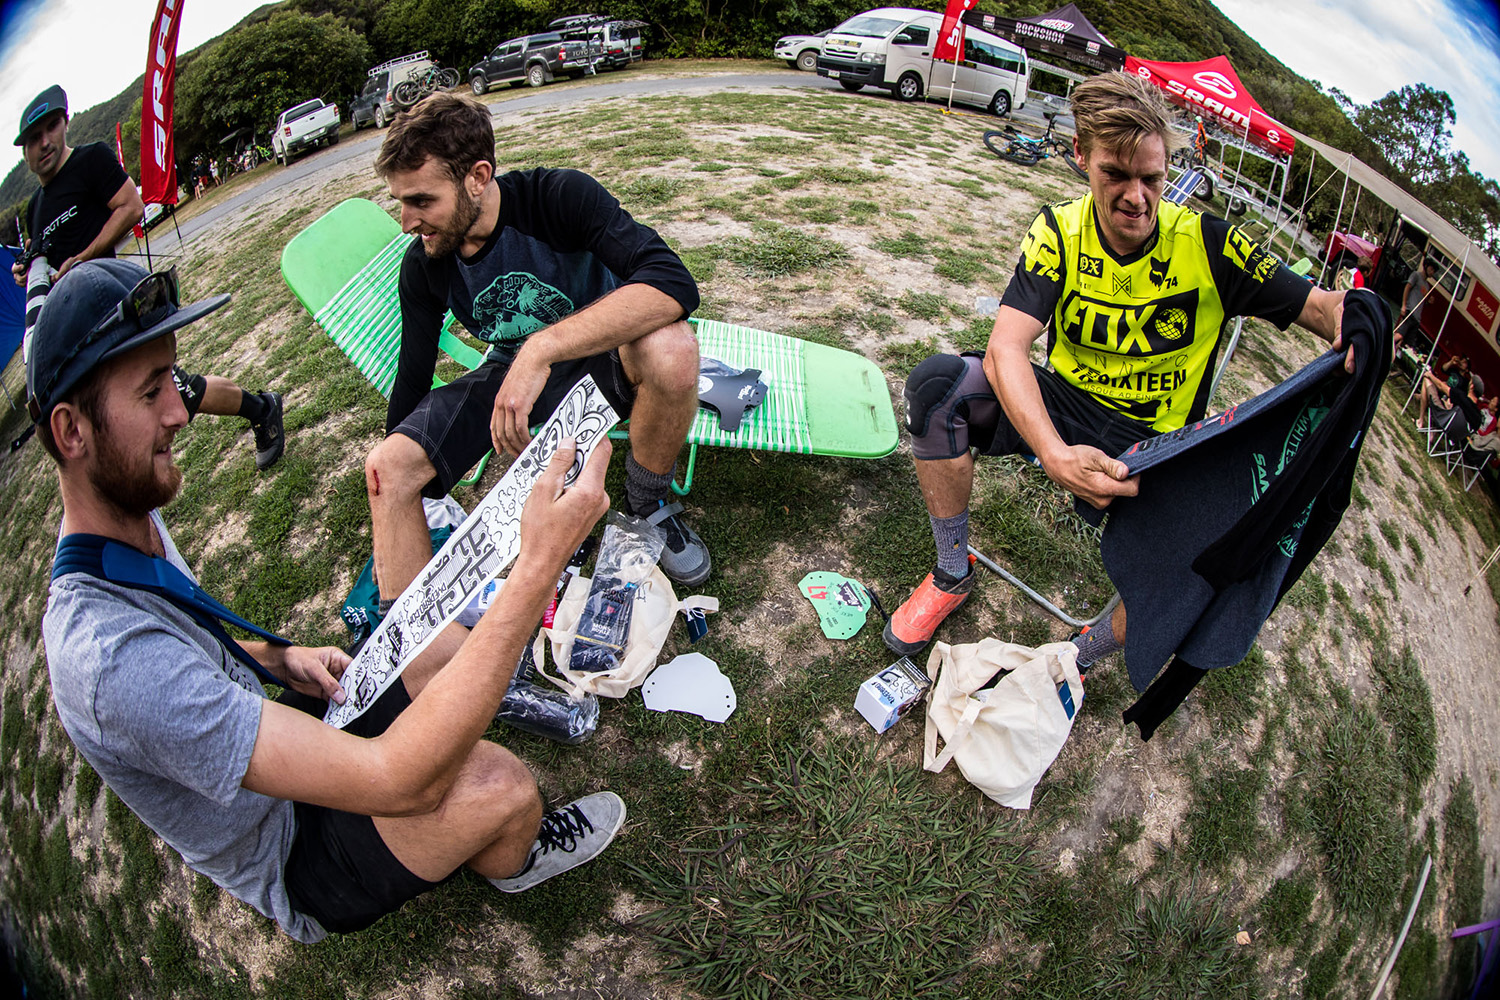 The infamous NZ Enduro goodie bag was a hit with everyone. DYED BRO sticker kits, yes please.